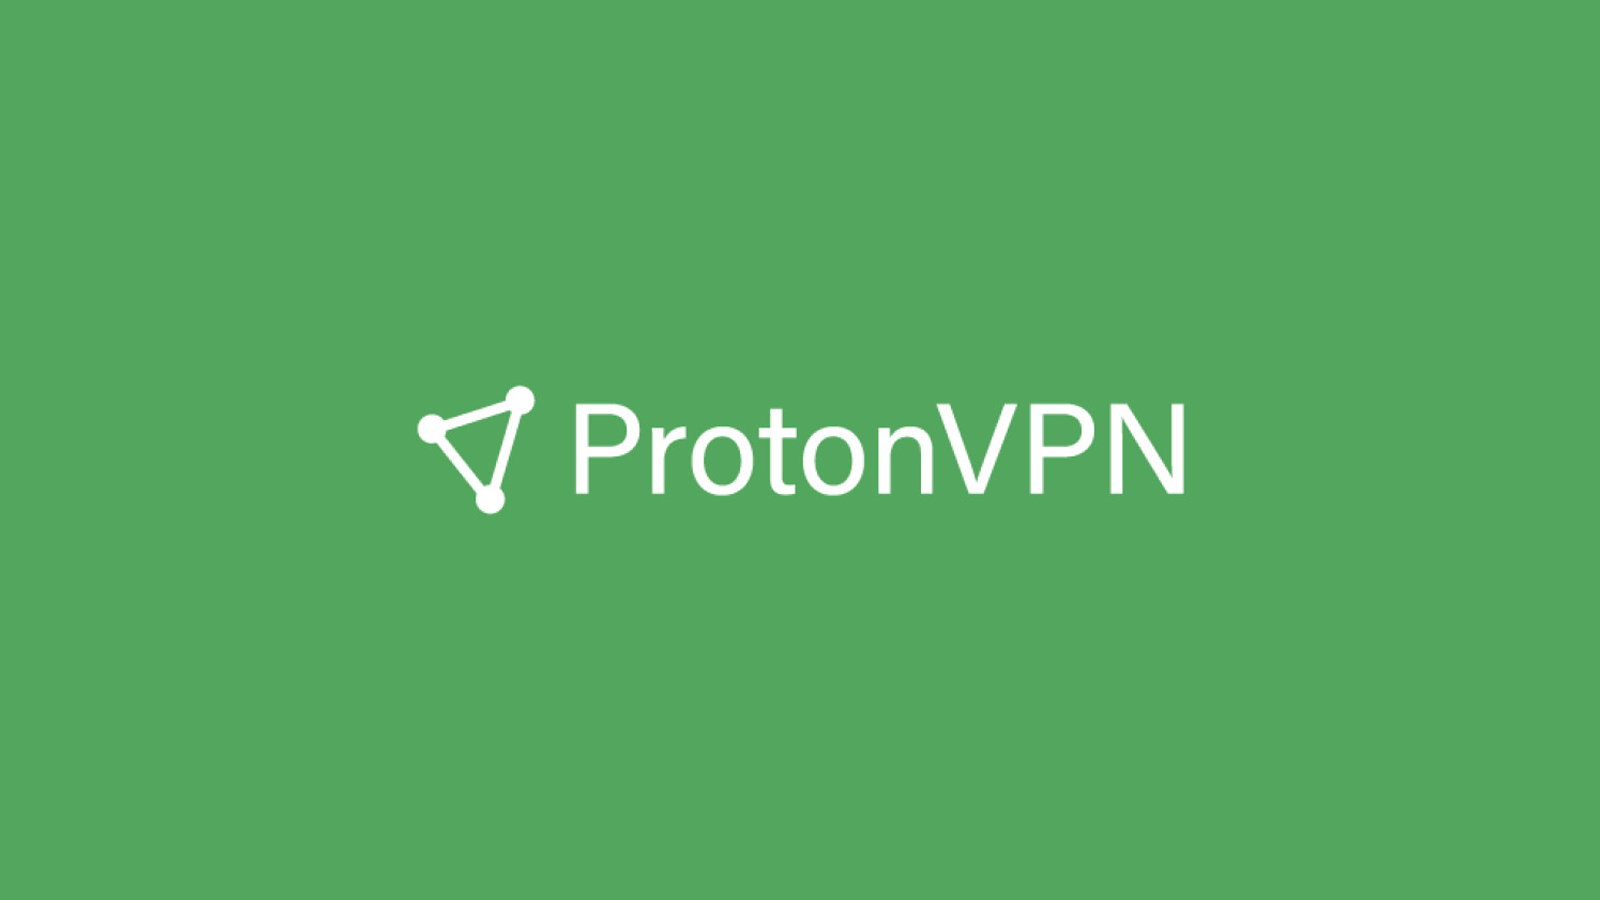 ProtonVPN 2.4.31 Full Crack [2021]Latest Version Is Here